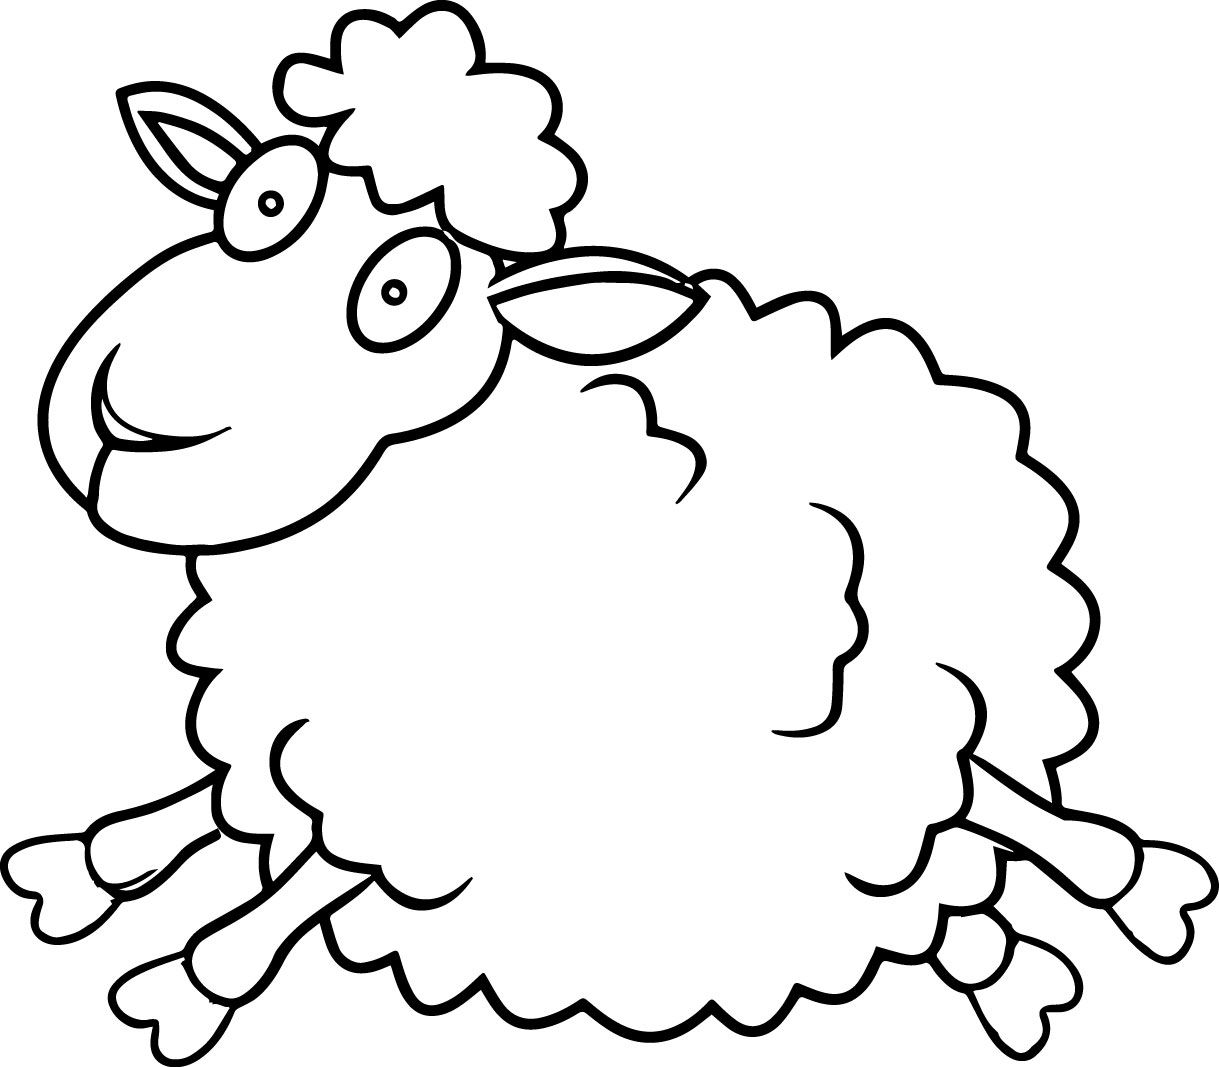 sheep pictures to color sheep coloring pages coloring pages animal coloring pictures color to sheep